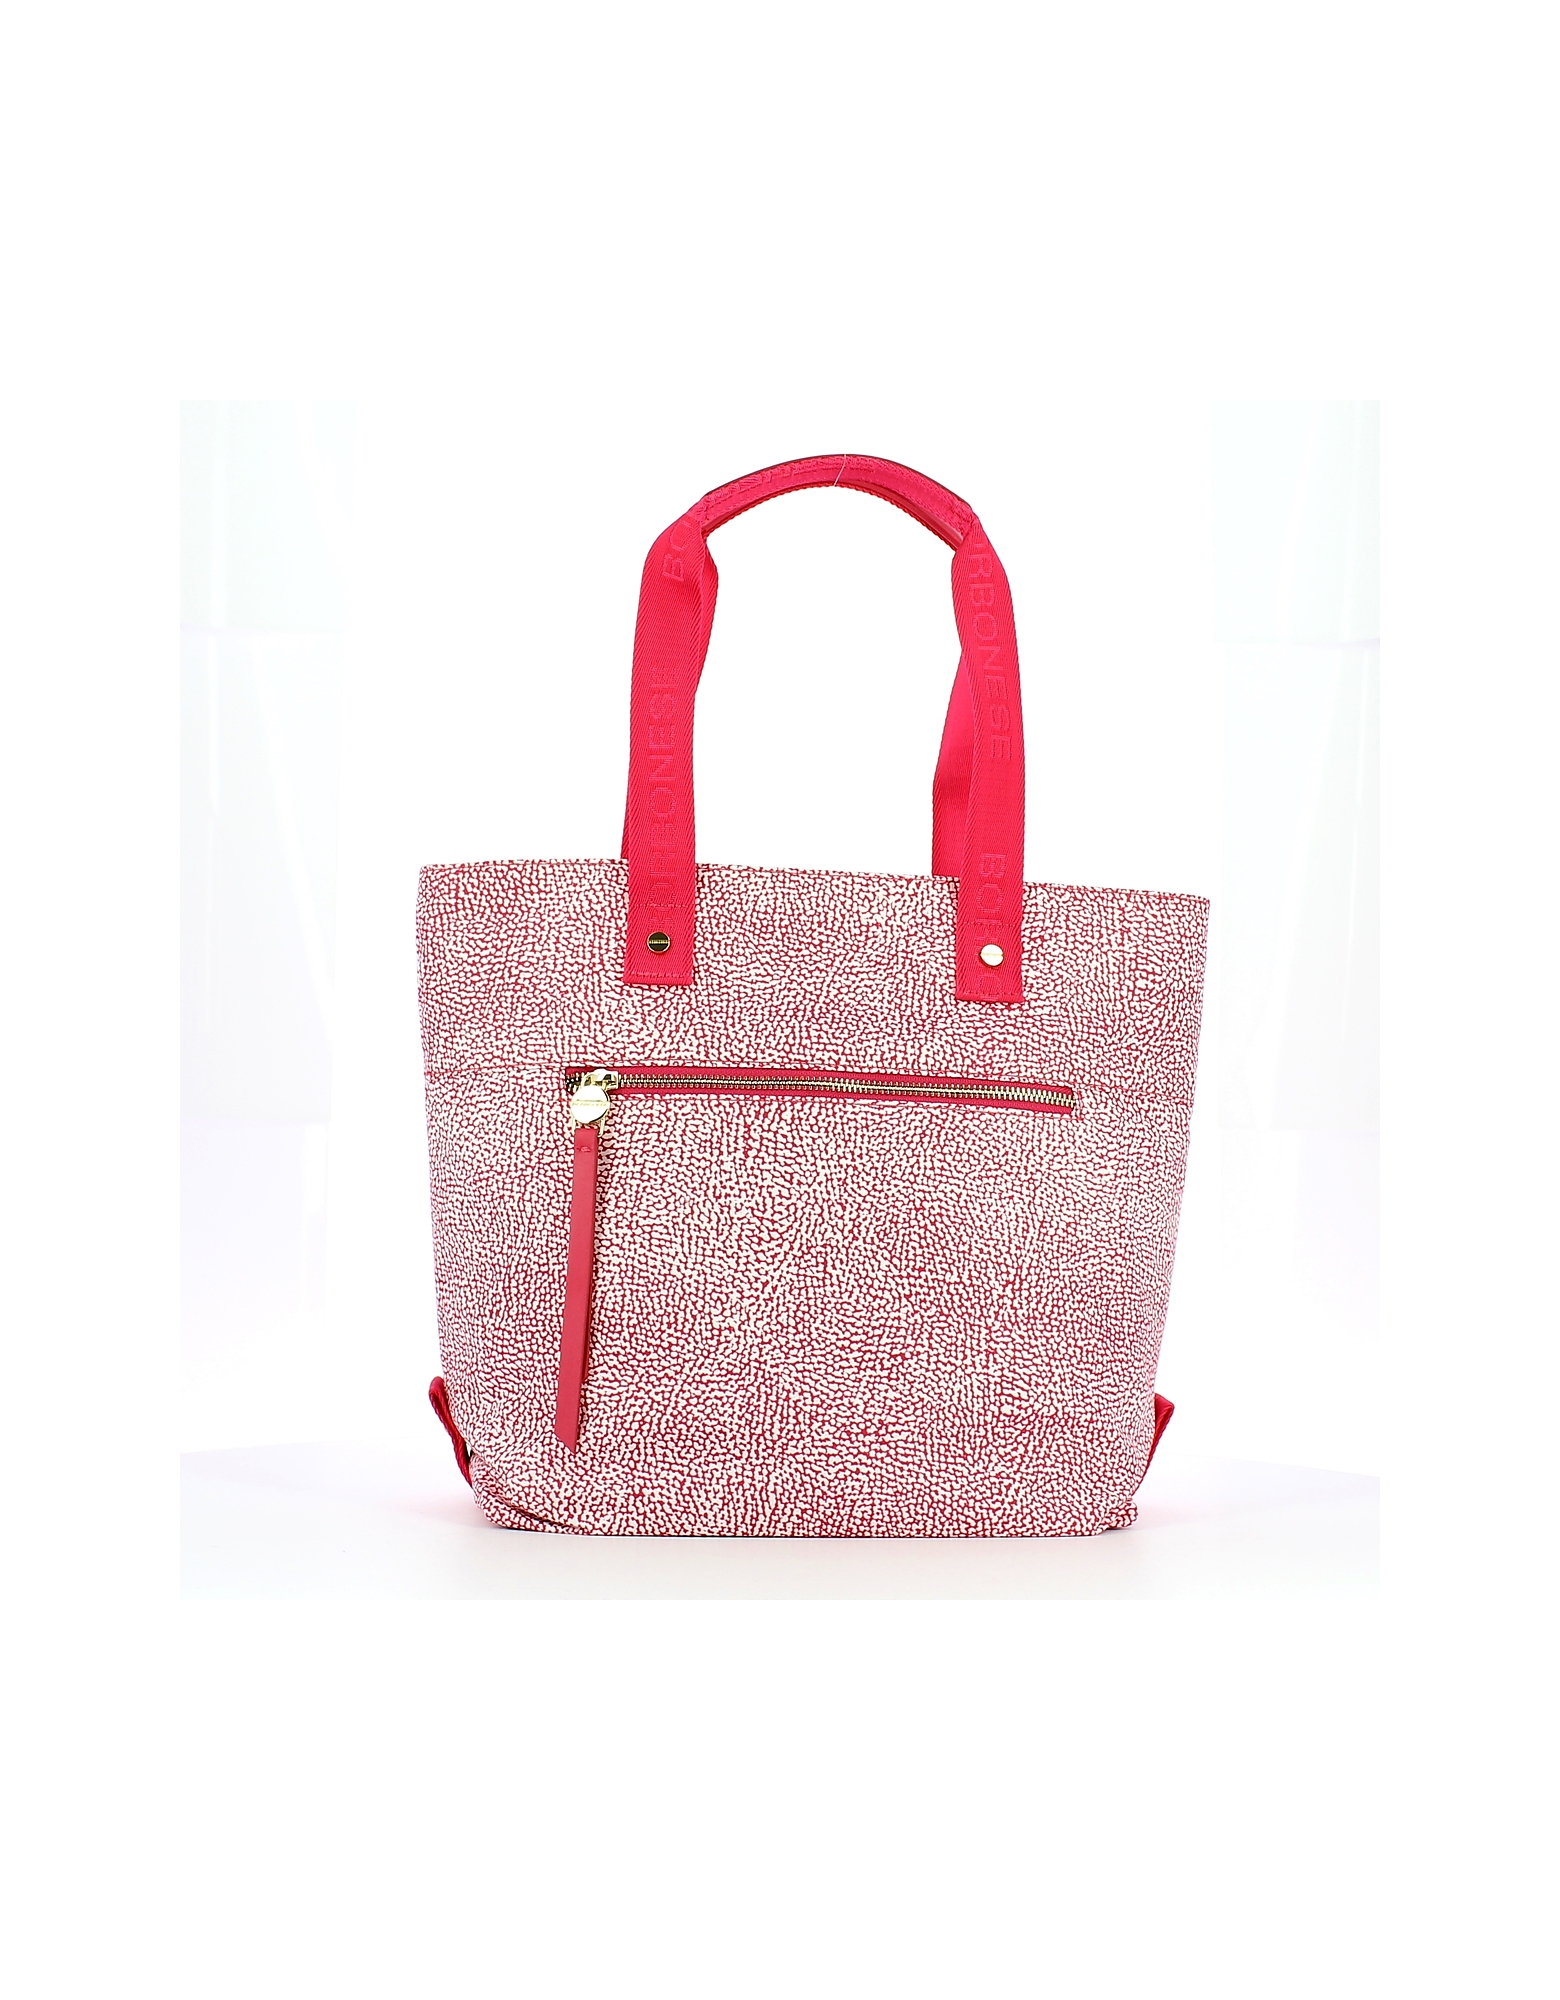 Borbonese Designer Handbags, Pink North South Jet Shopping Bag